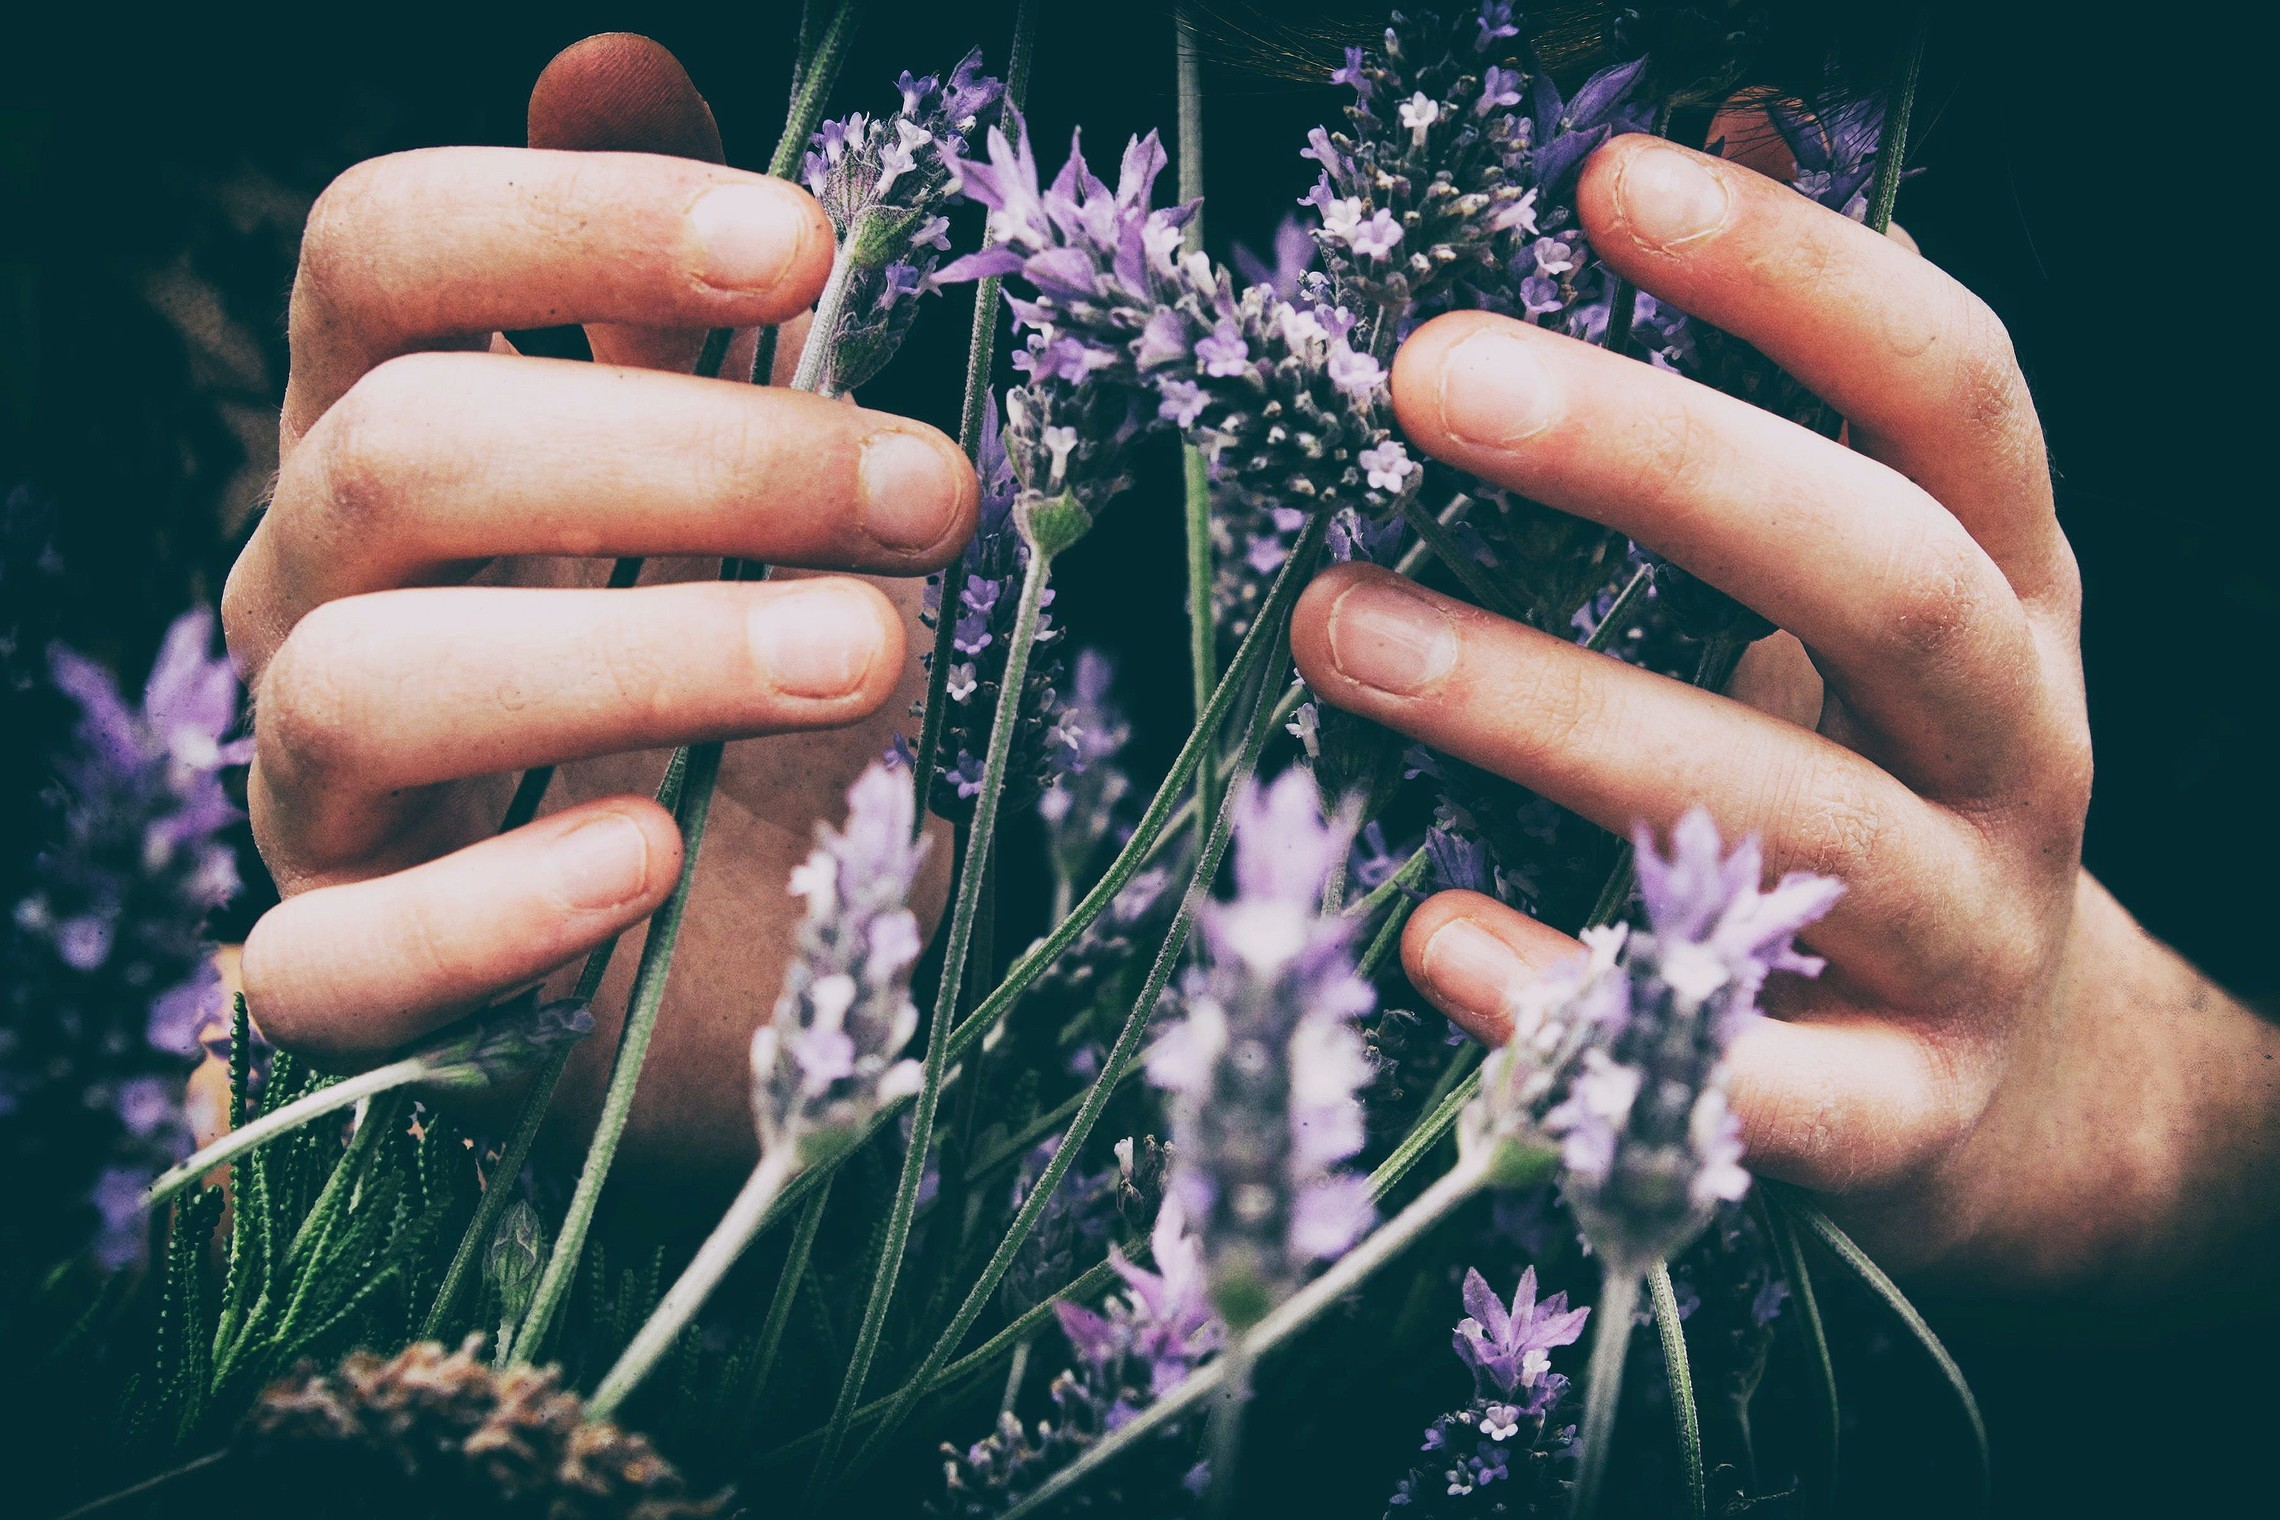 Hands and Lavender